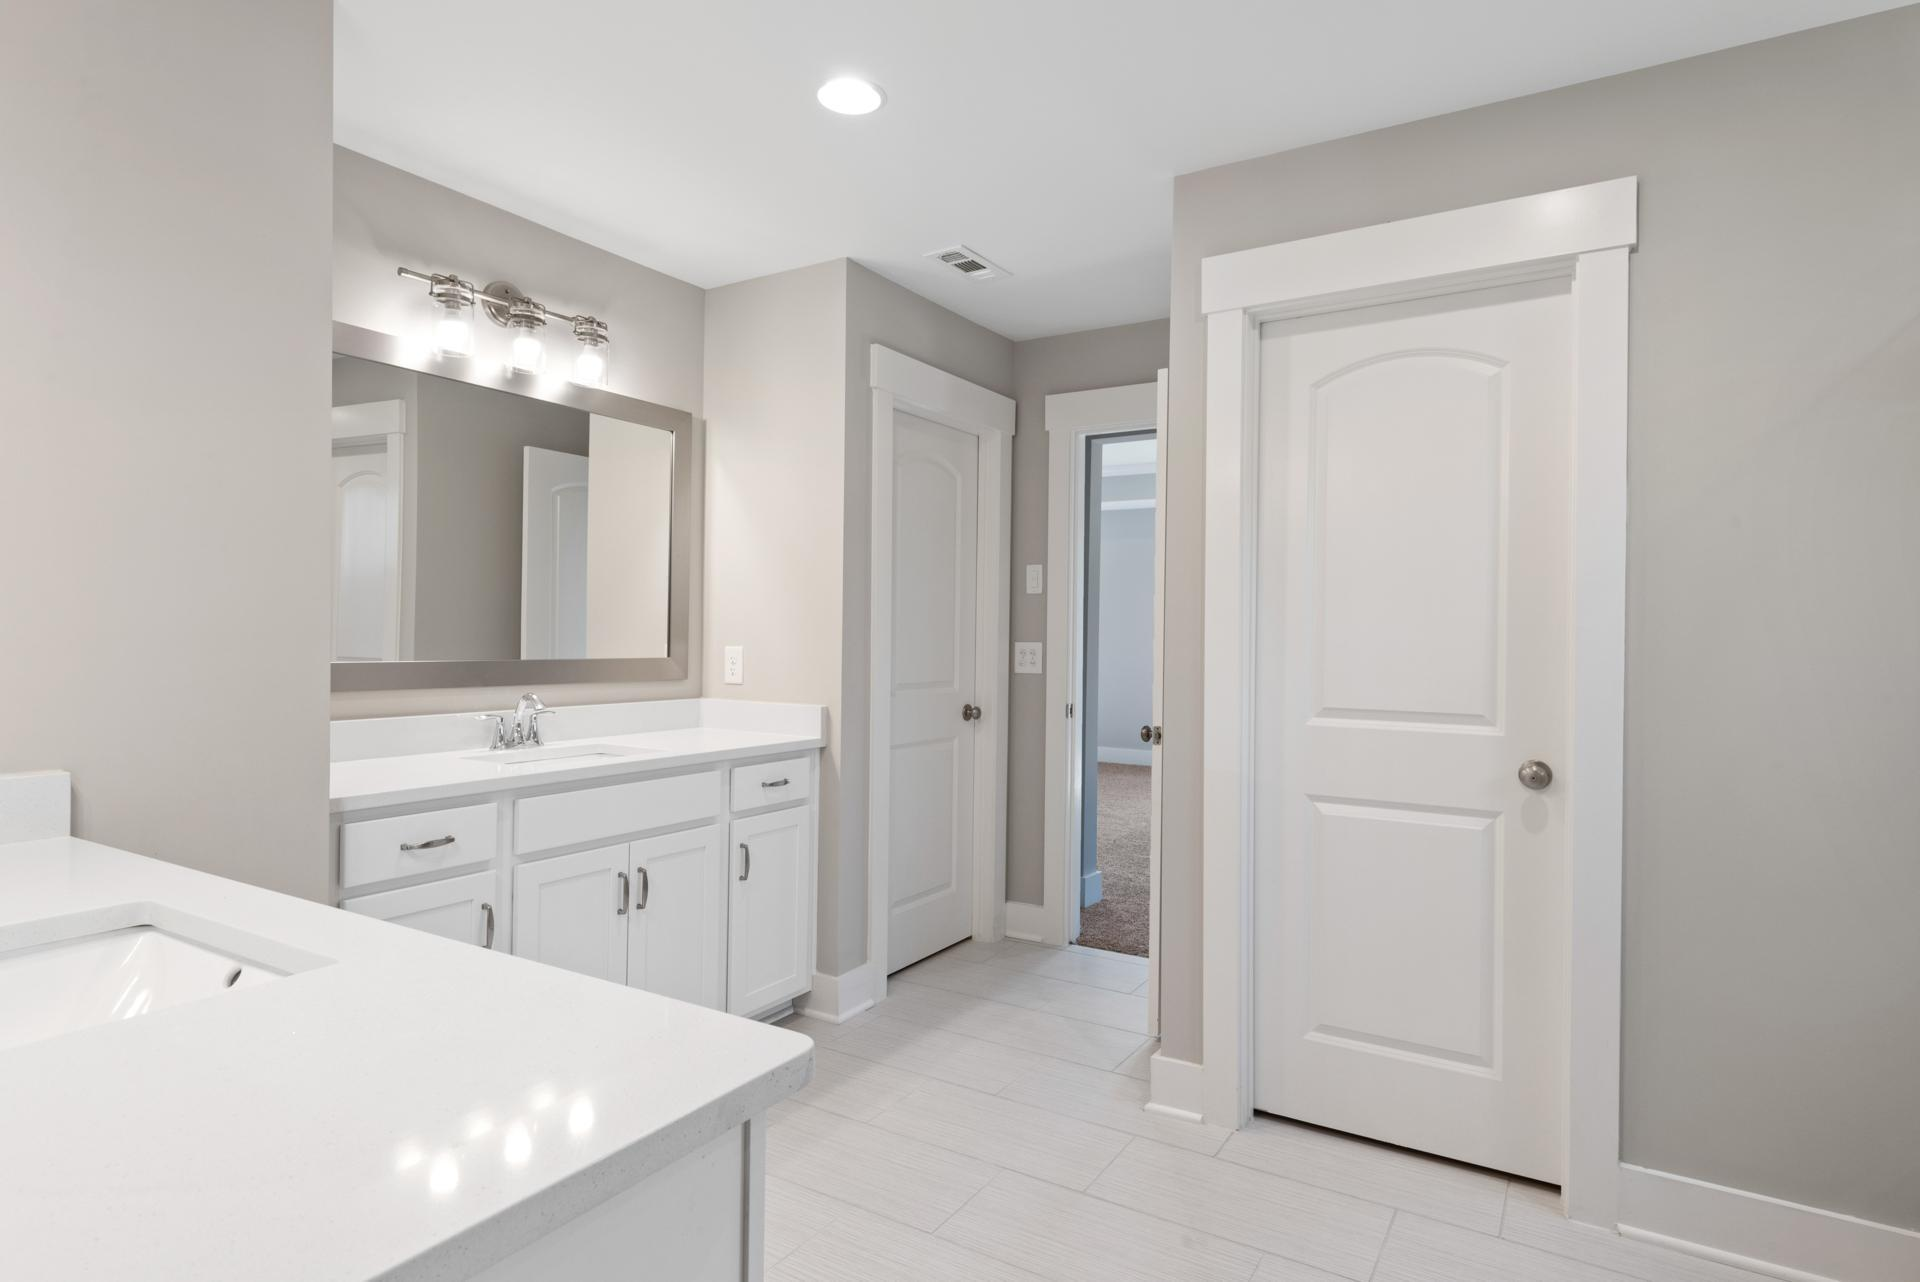 Bathroom featured in the Brookston By Drees Homes in Nashville, TN